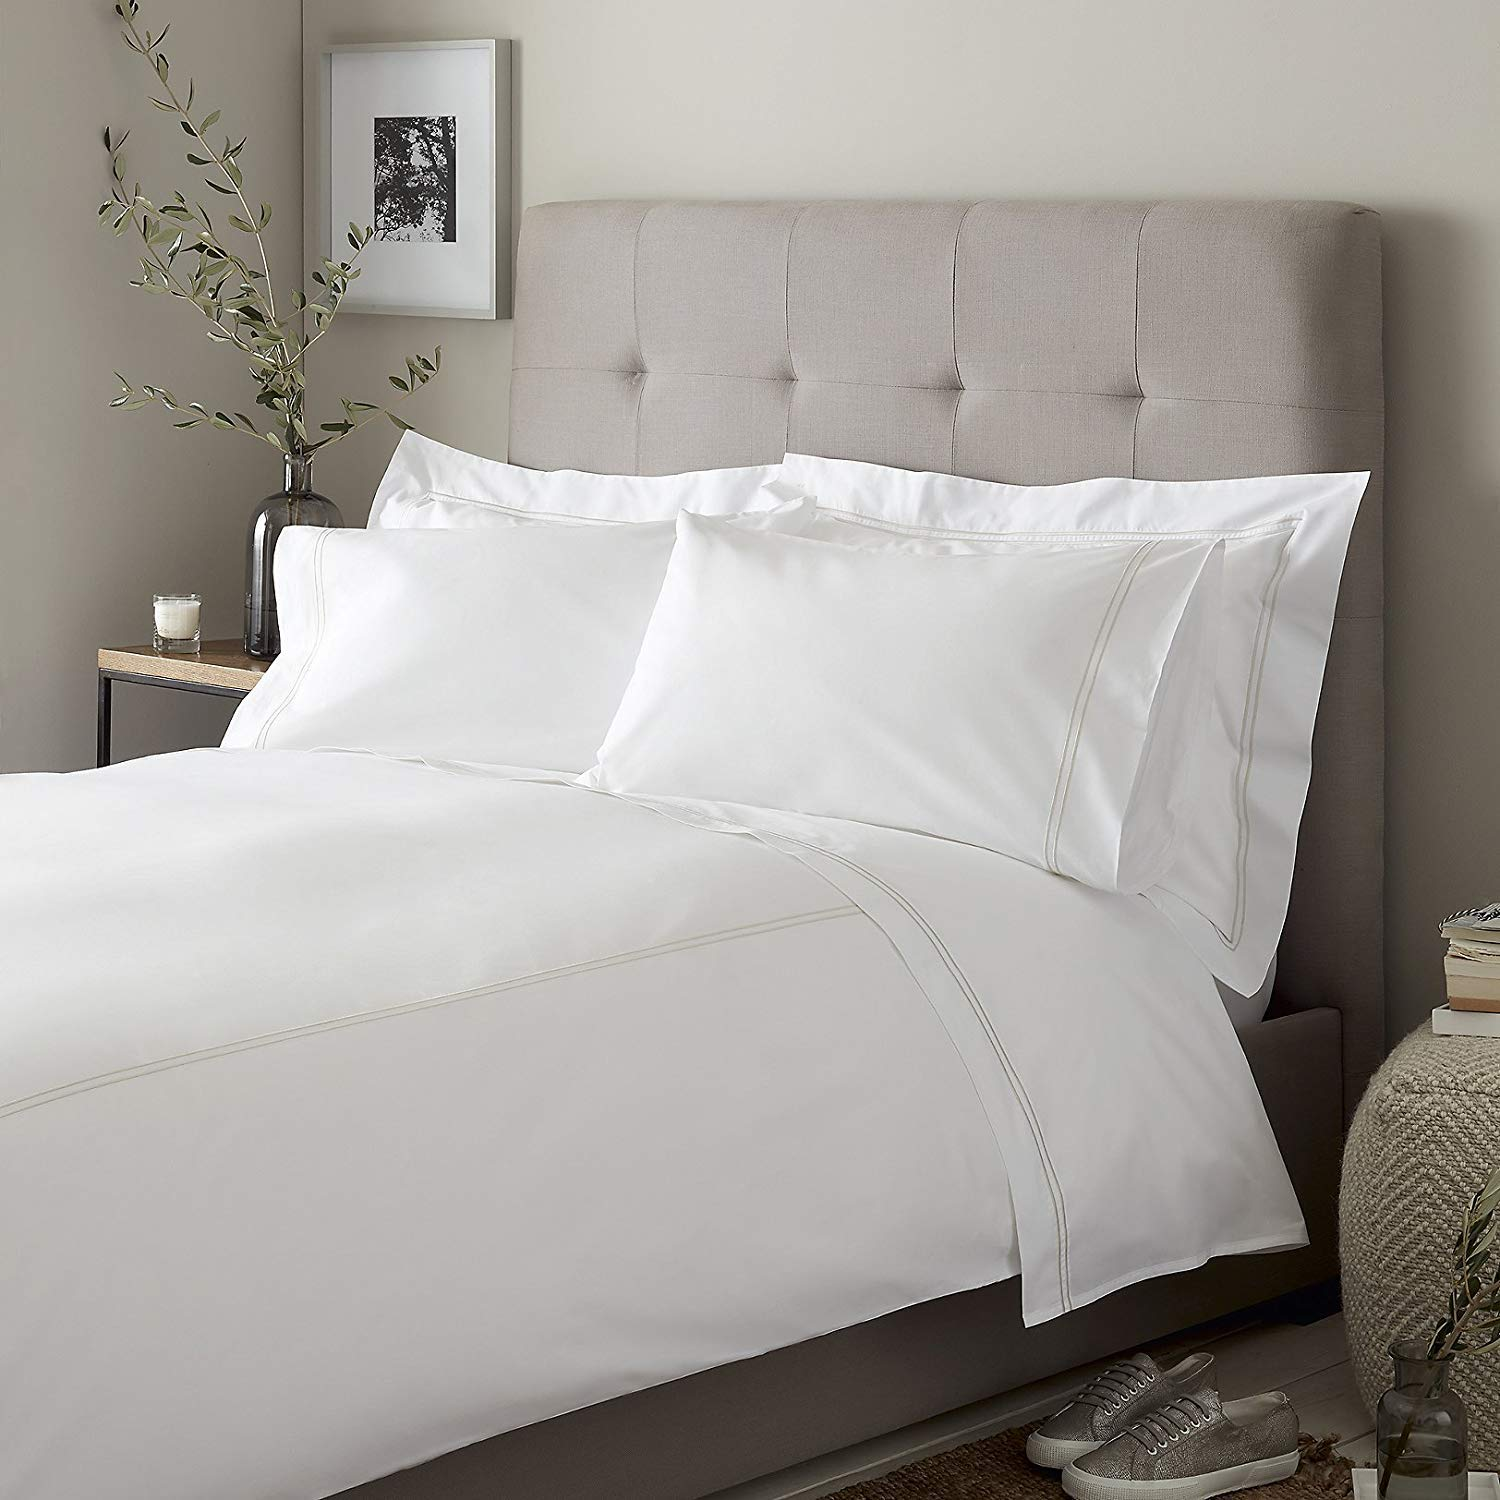 Solid Pattern Lussona Luxurious 1000 Thread Count Italian Finish 100/% Egyptian Cotton 4-Piece Bed Sheet Set . Fits Mattress Up to 19 inches Deep Pocket Color - Ivory, Size - Queen